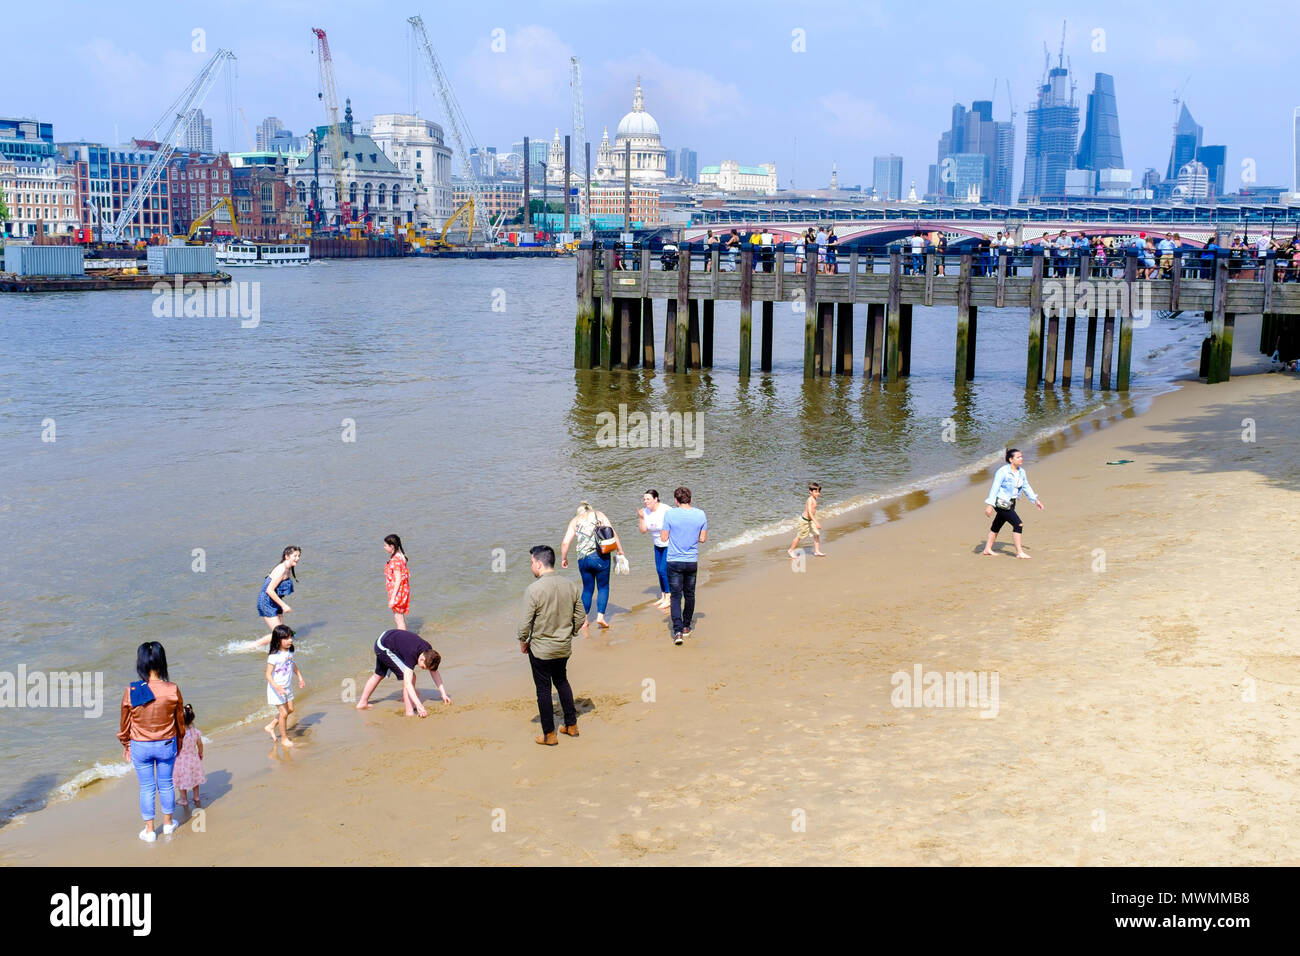 People enjoying the sandy beach of River Thames foreshore at low tide. - Stock Image